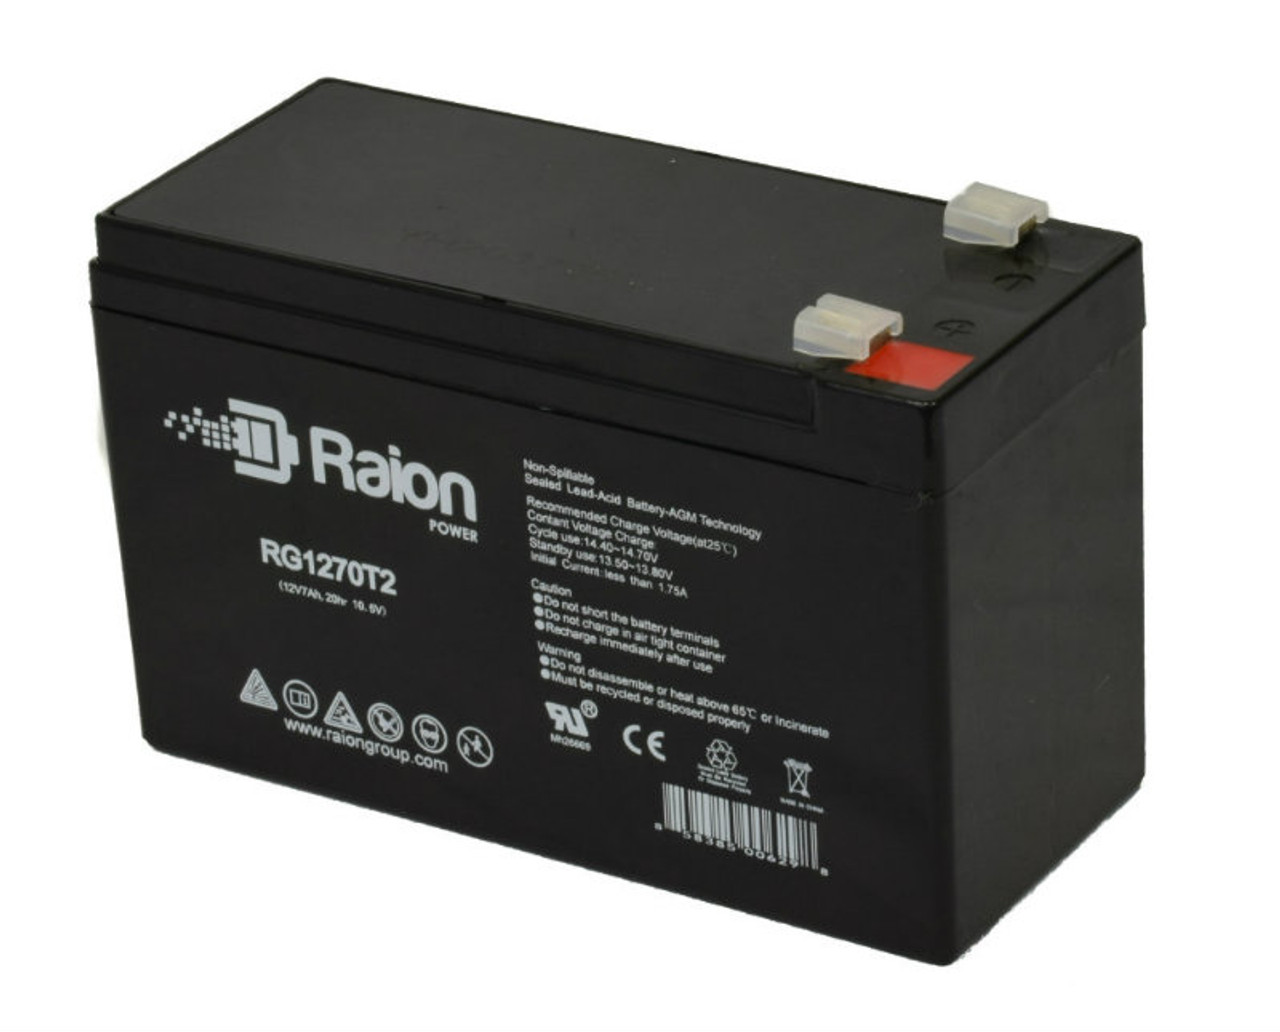 Raion Power RG1270T1 Replacement Battery for Vision CP1270A